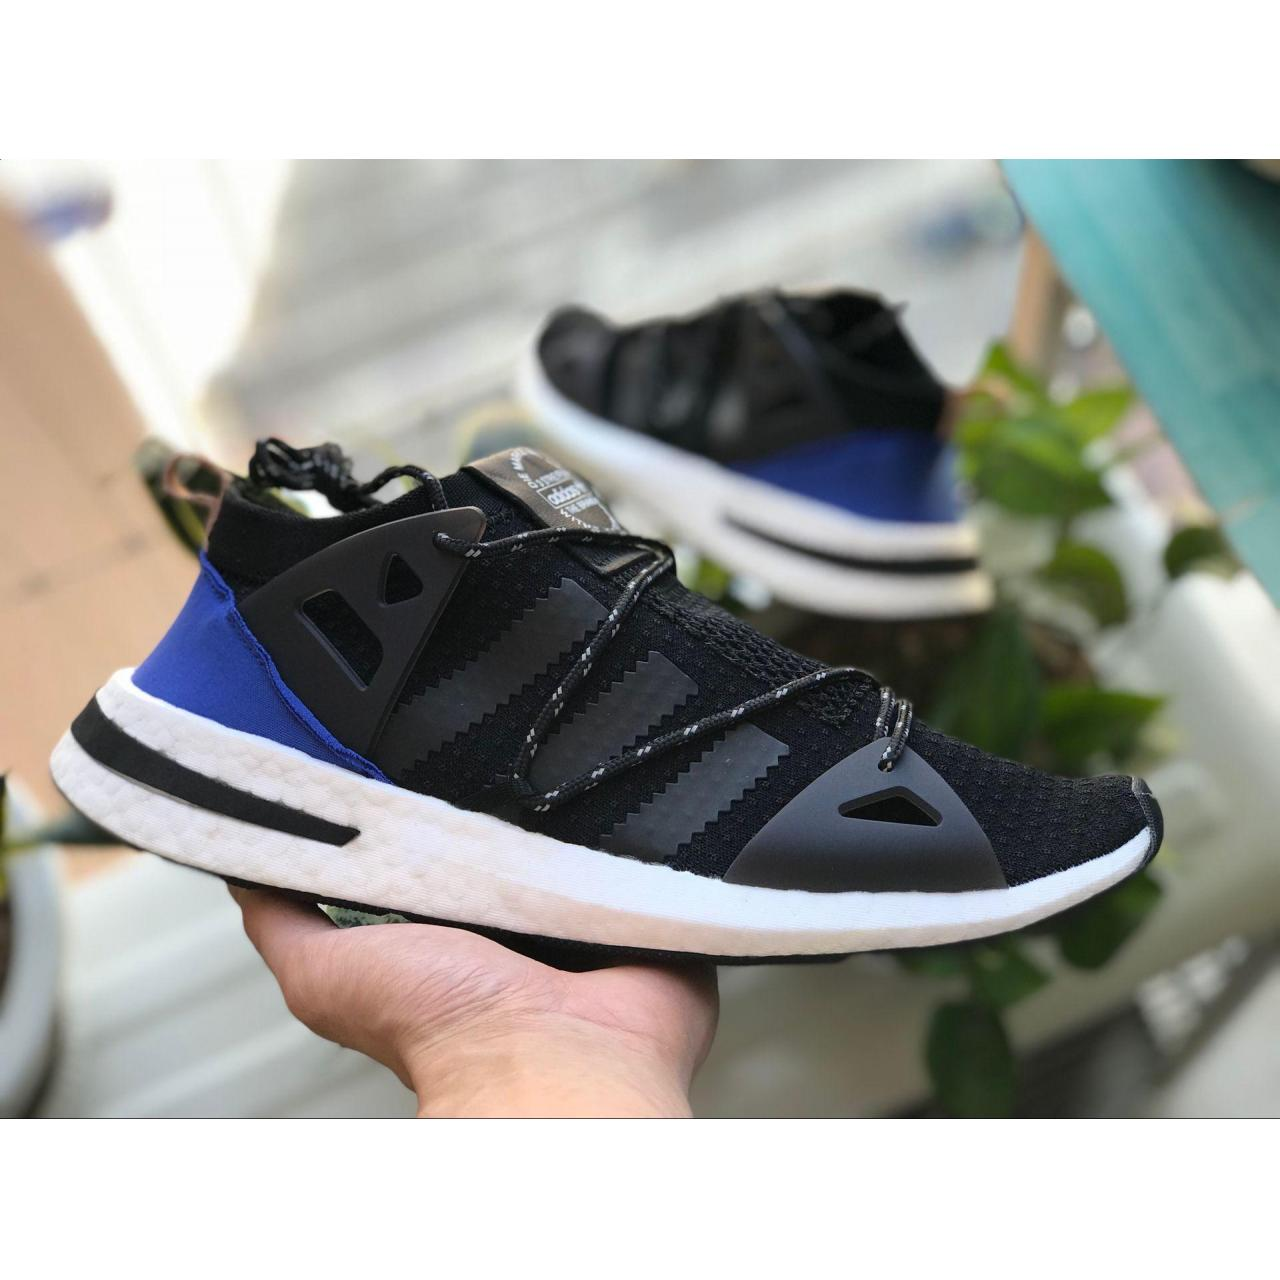 Quality Best sneakers aaaaa quality replica Adidas yeezy 350 V2 NMD shoes for sale